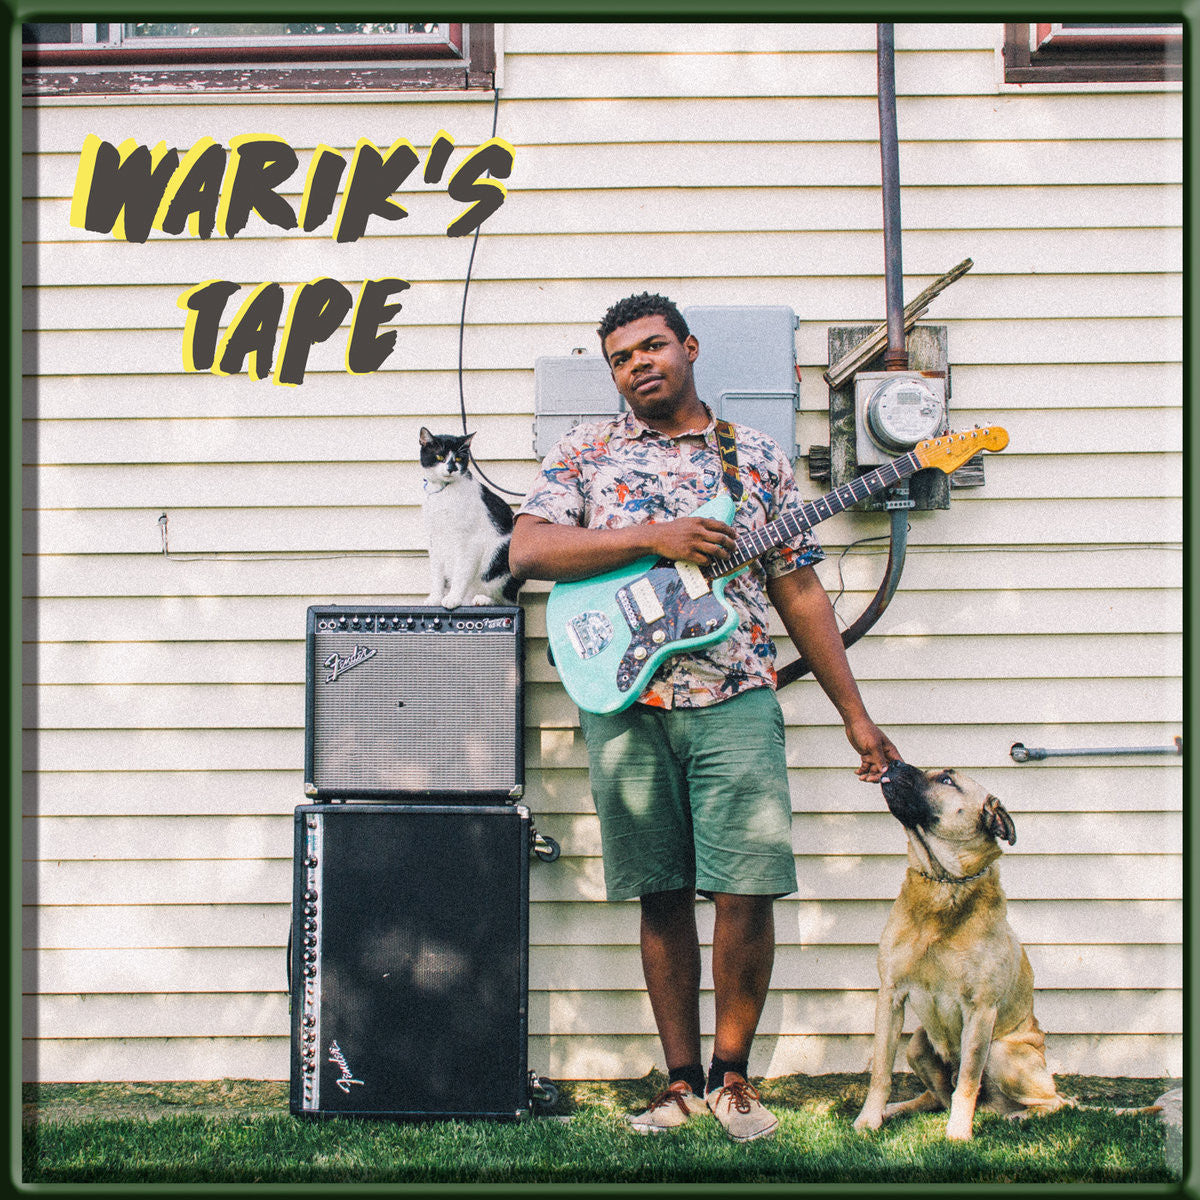 Warik - Warik's Tape - New Cassette 2016 Limited Edition of 100 Copies on Green-Tape - Chicago IL Lo-Fi / Surf-Psych! V Rad! free d/l at warik.bandcamp.com!